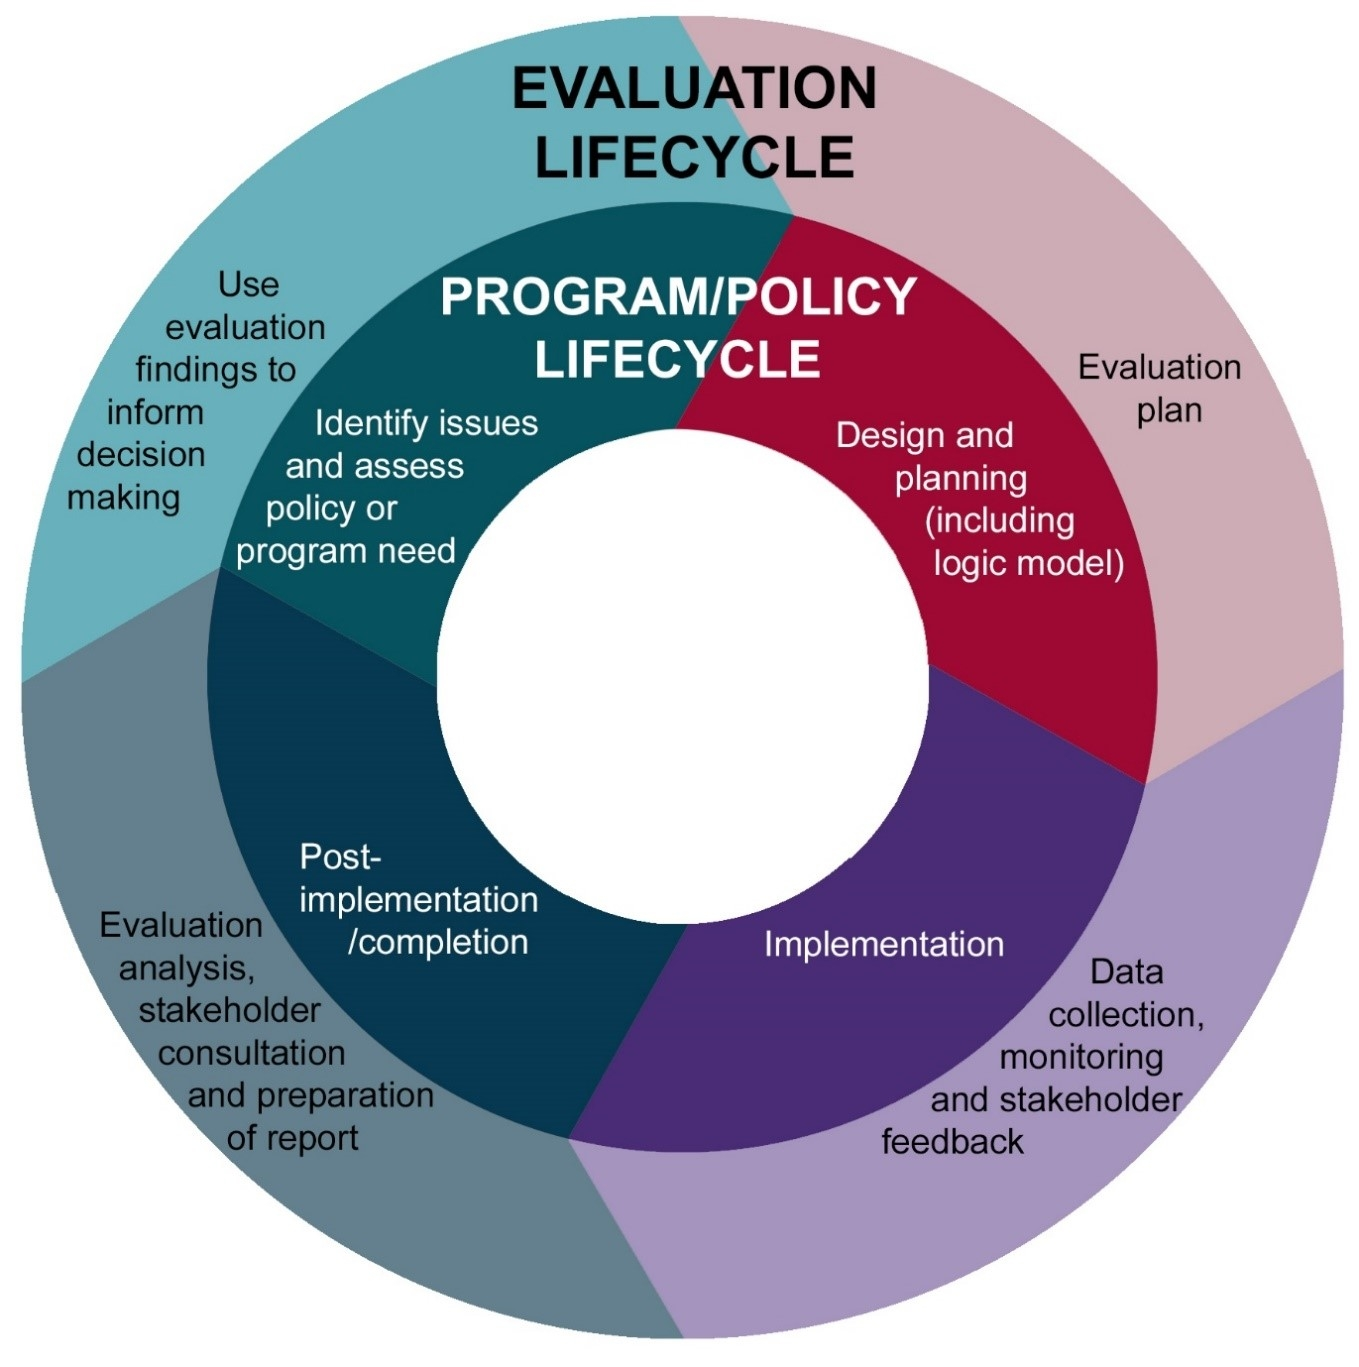 Cycle diagram. An inner circle shows the program/policy lifecycle in four steps: Design and planning (including logic model); Implementation; Post-implementation/completion; Identify issues and assess policy or program need. An outer circle shows the corr